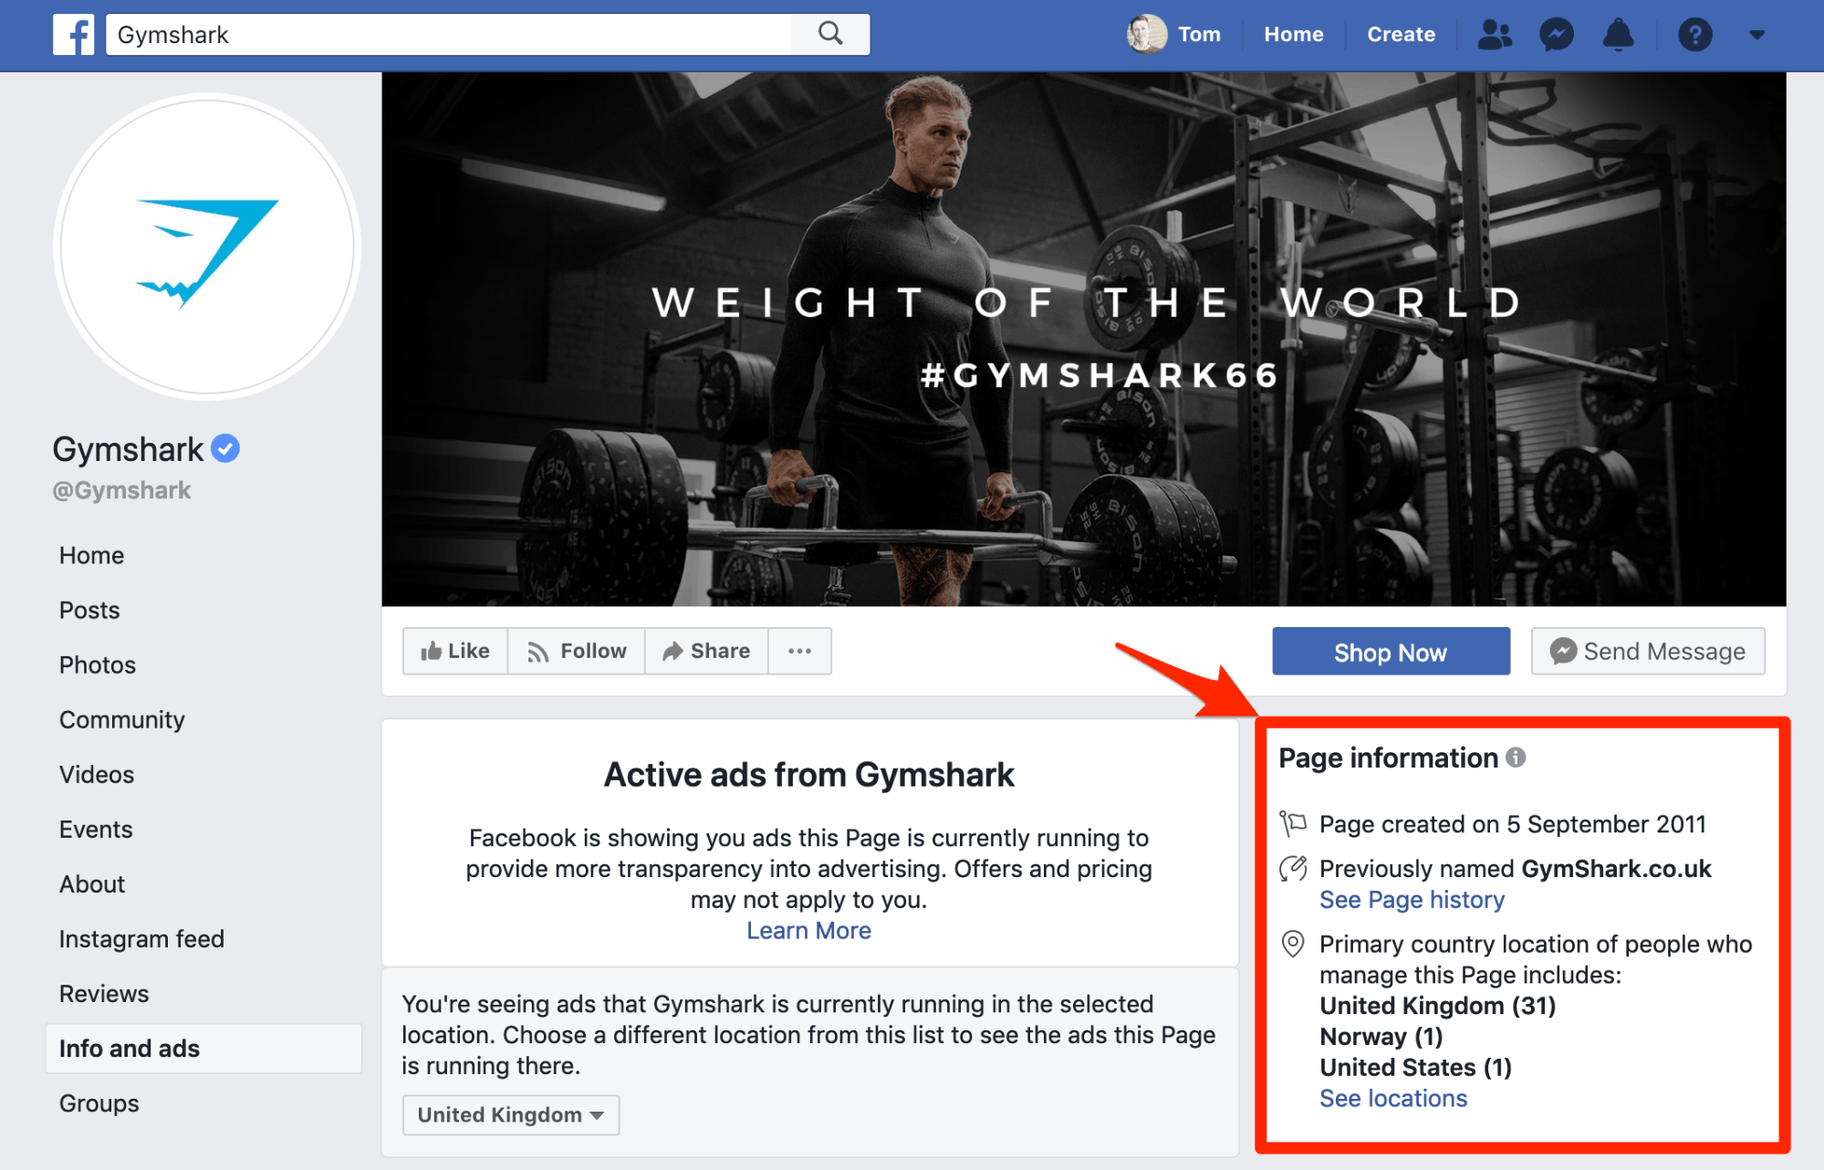 Gymshark Facebook Info and Ads